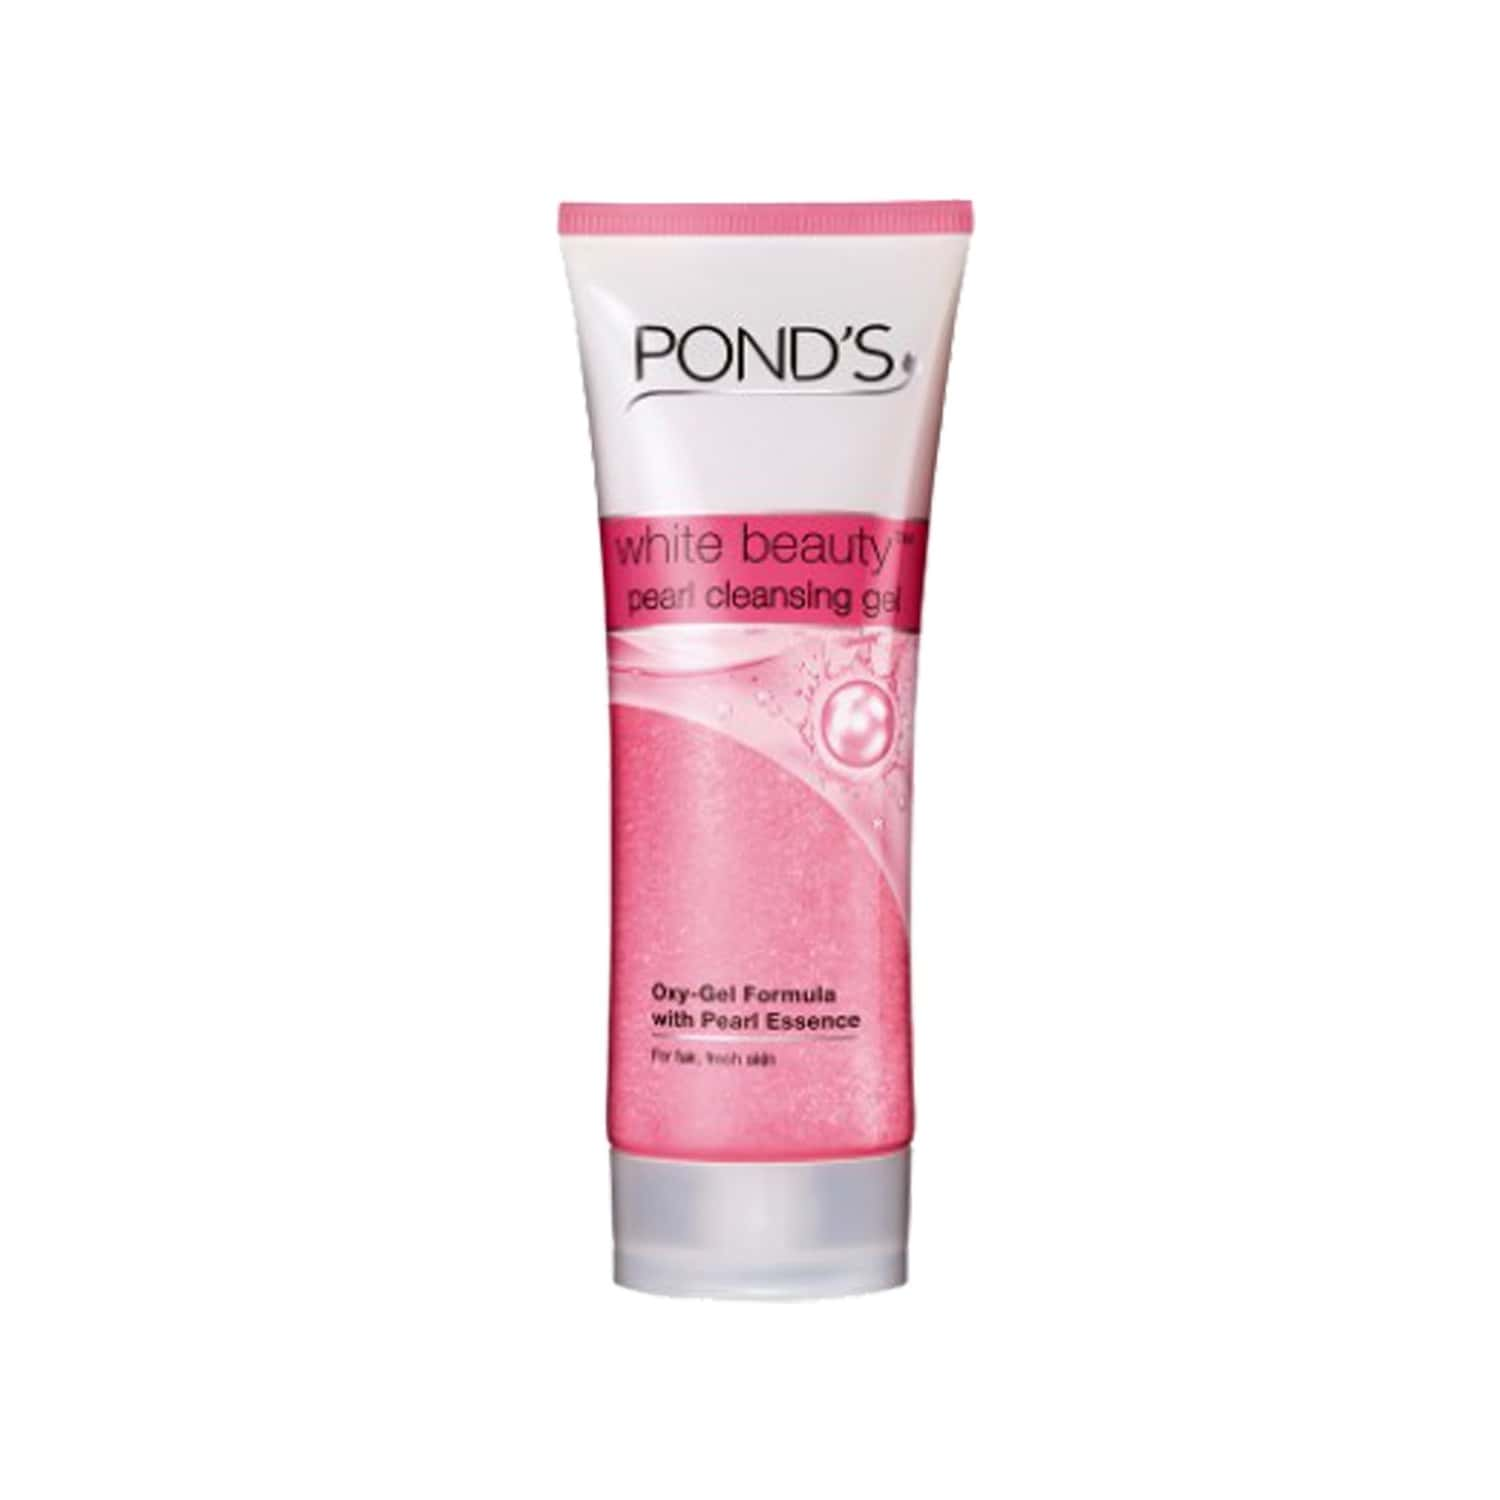 Pond's White Beauty Pearl Cleansing Gel Face Wash 100 Gm